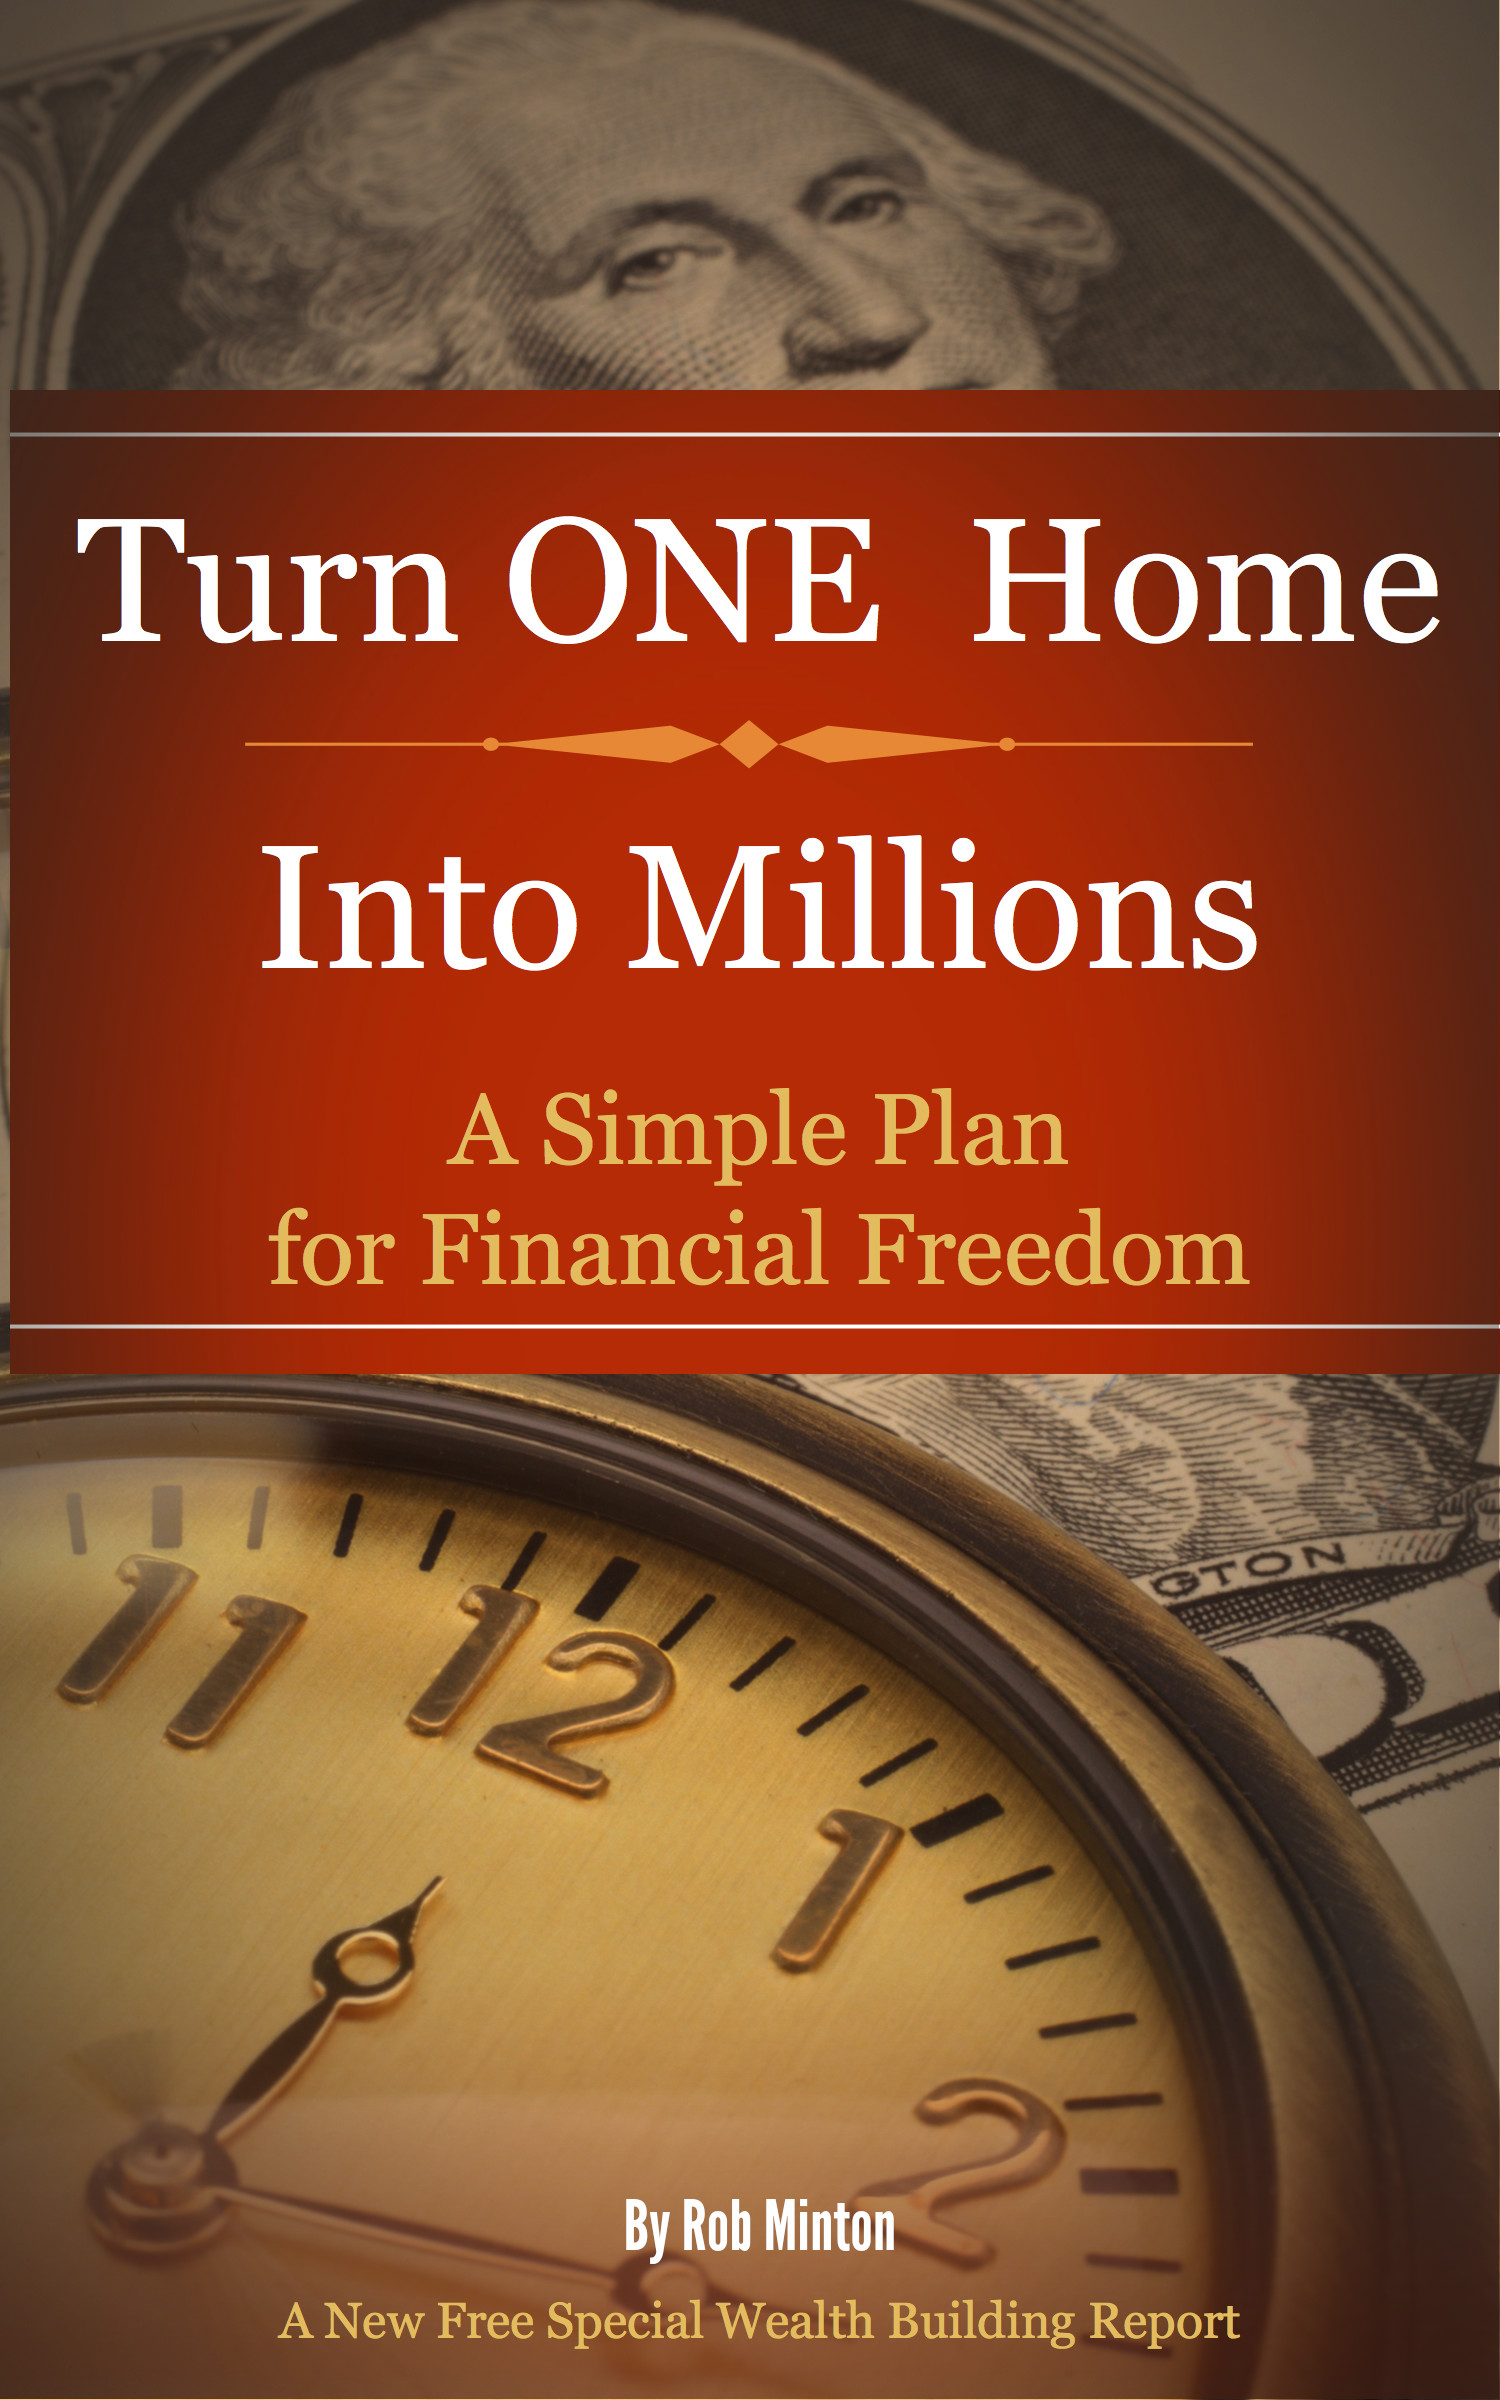 How to Turn One Home Into Millions